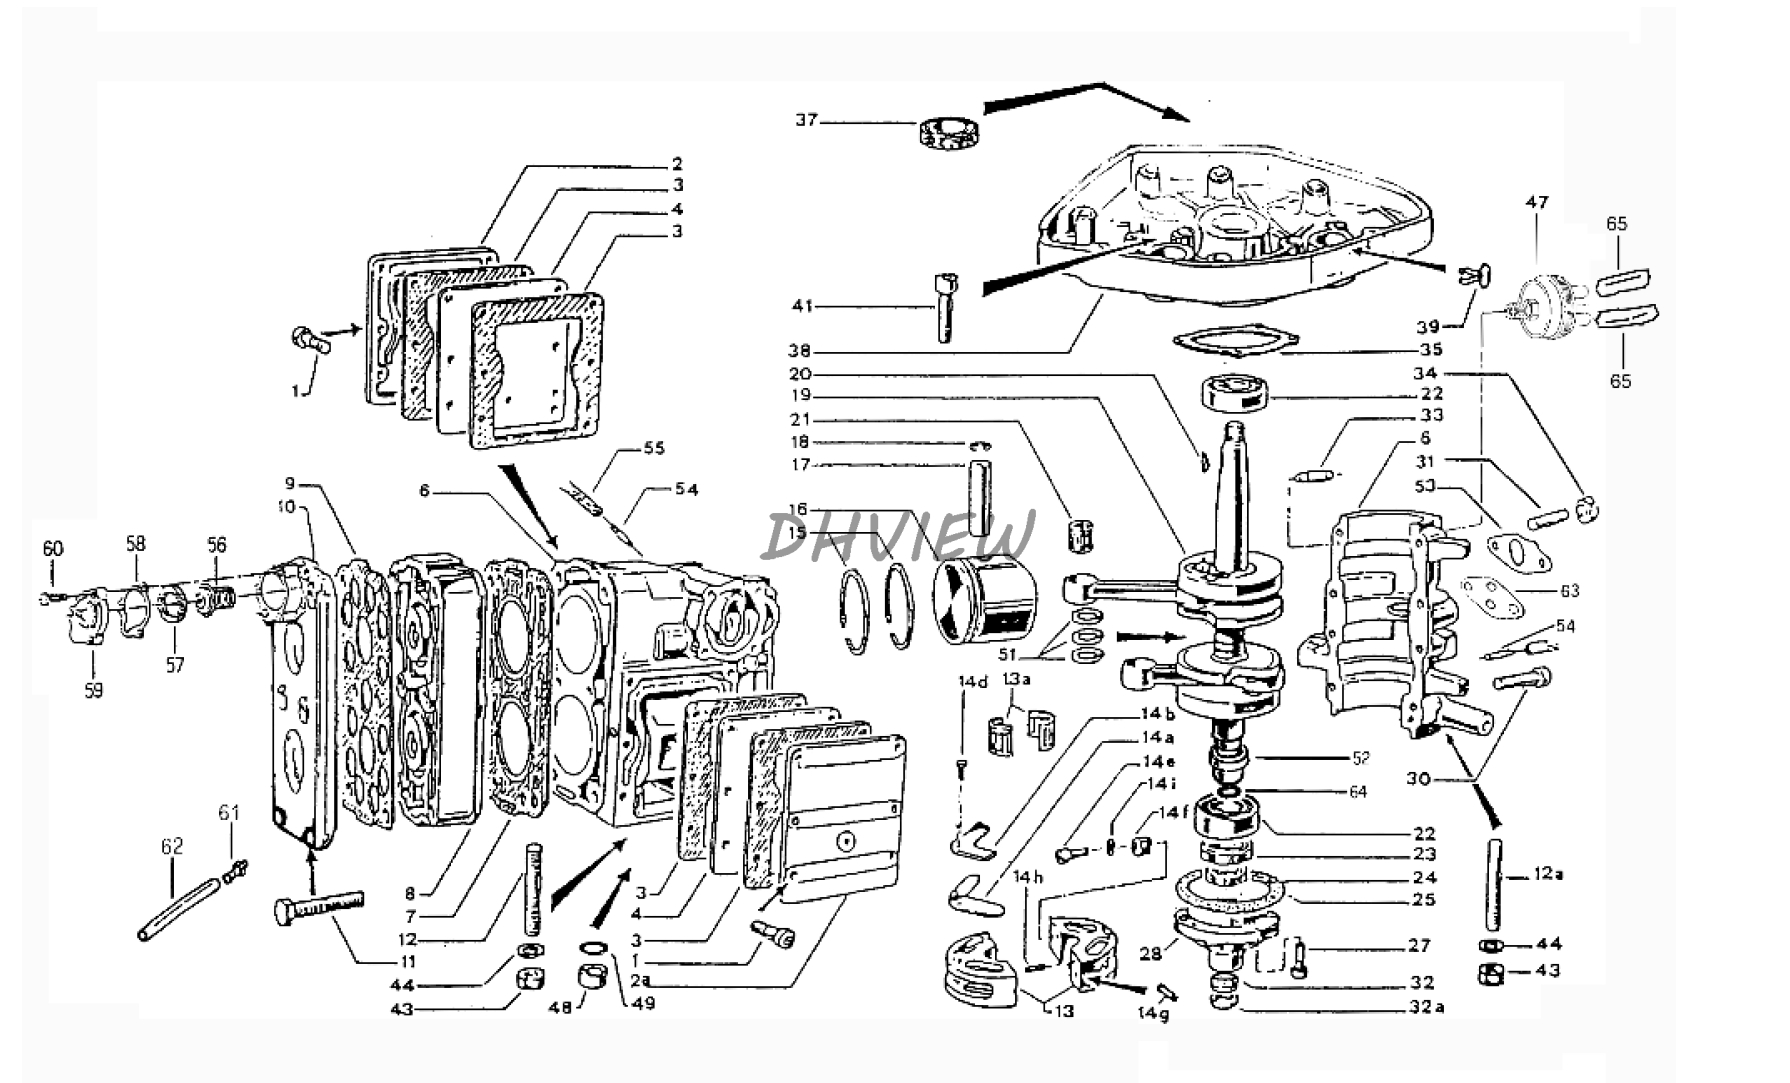 small resolution of aftermarket 09263 27005 rn 27x37x22 brg part for suzuki outboard diagram of 1987 dt65crsh suzuki marine outboard transmission diagram